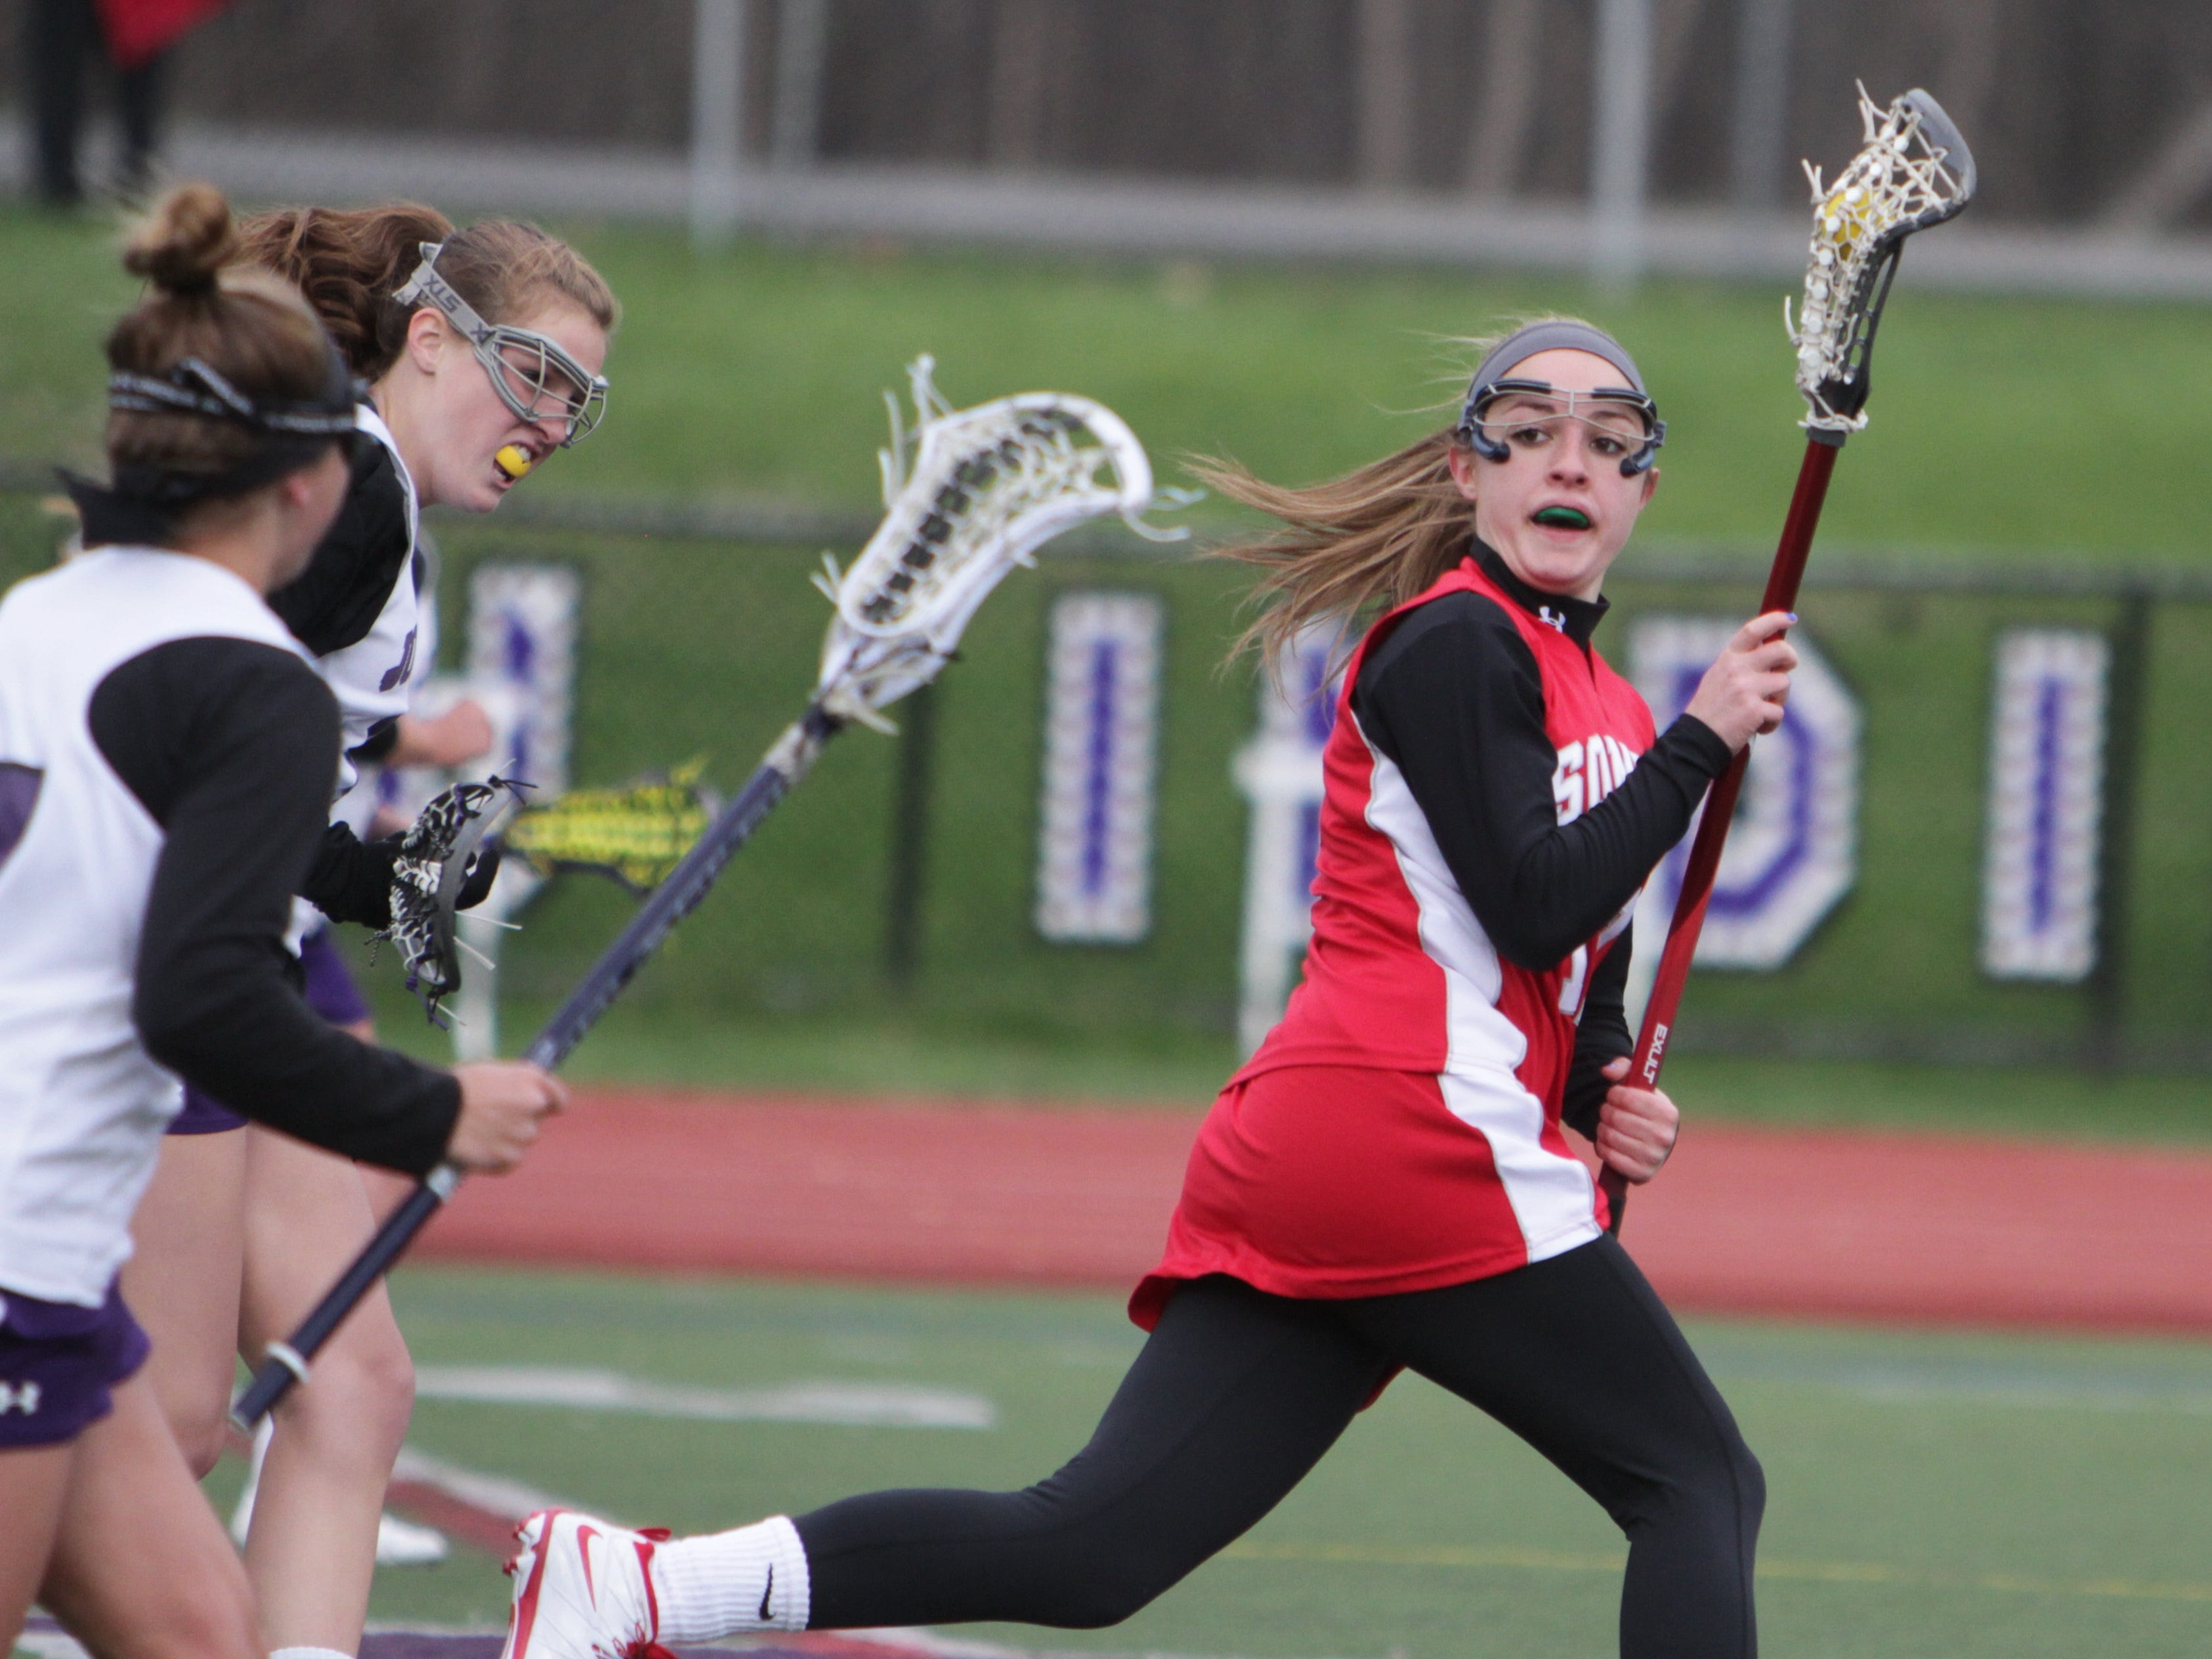 Somers' Nicole DeMase runs with the ball up the midfield during Friday's game at John Jay. She finished with seven goals, and Somers won 16-14.